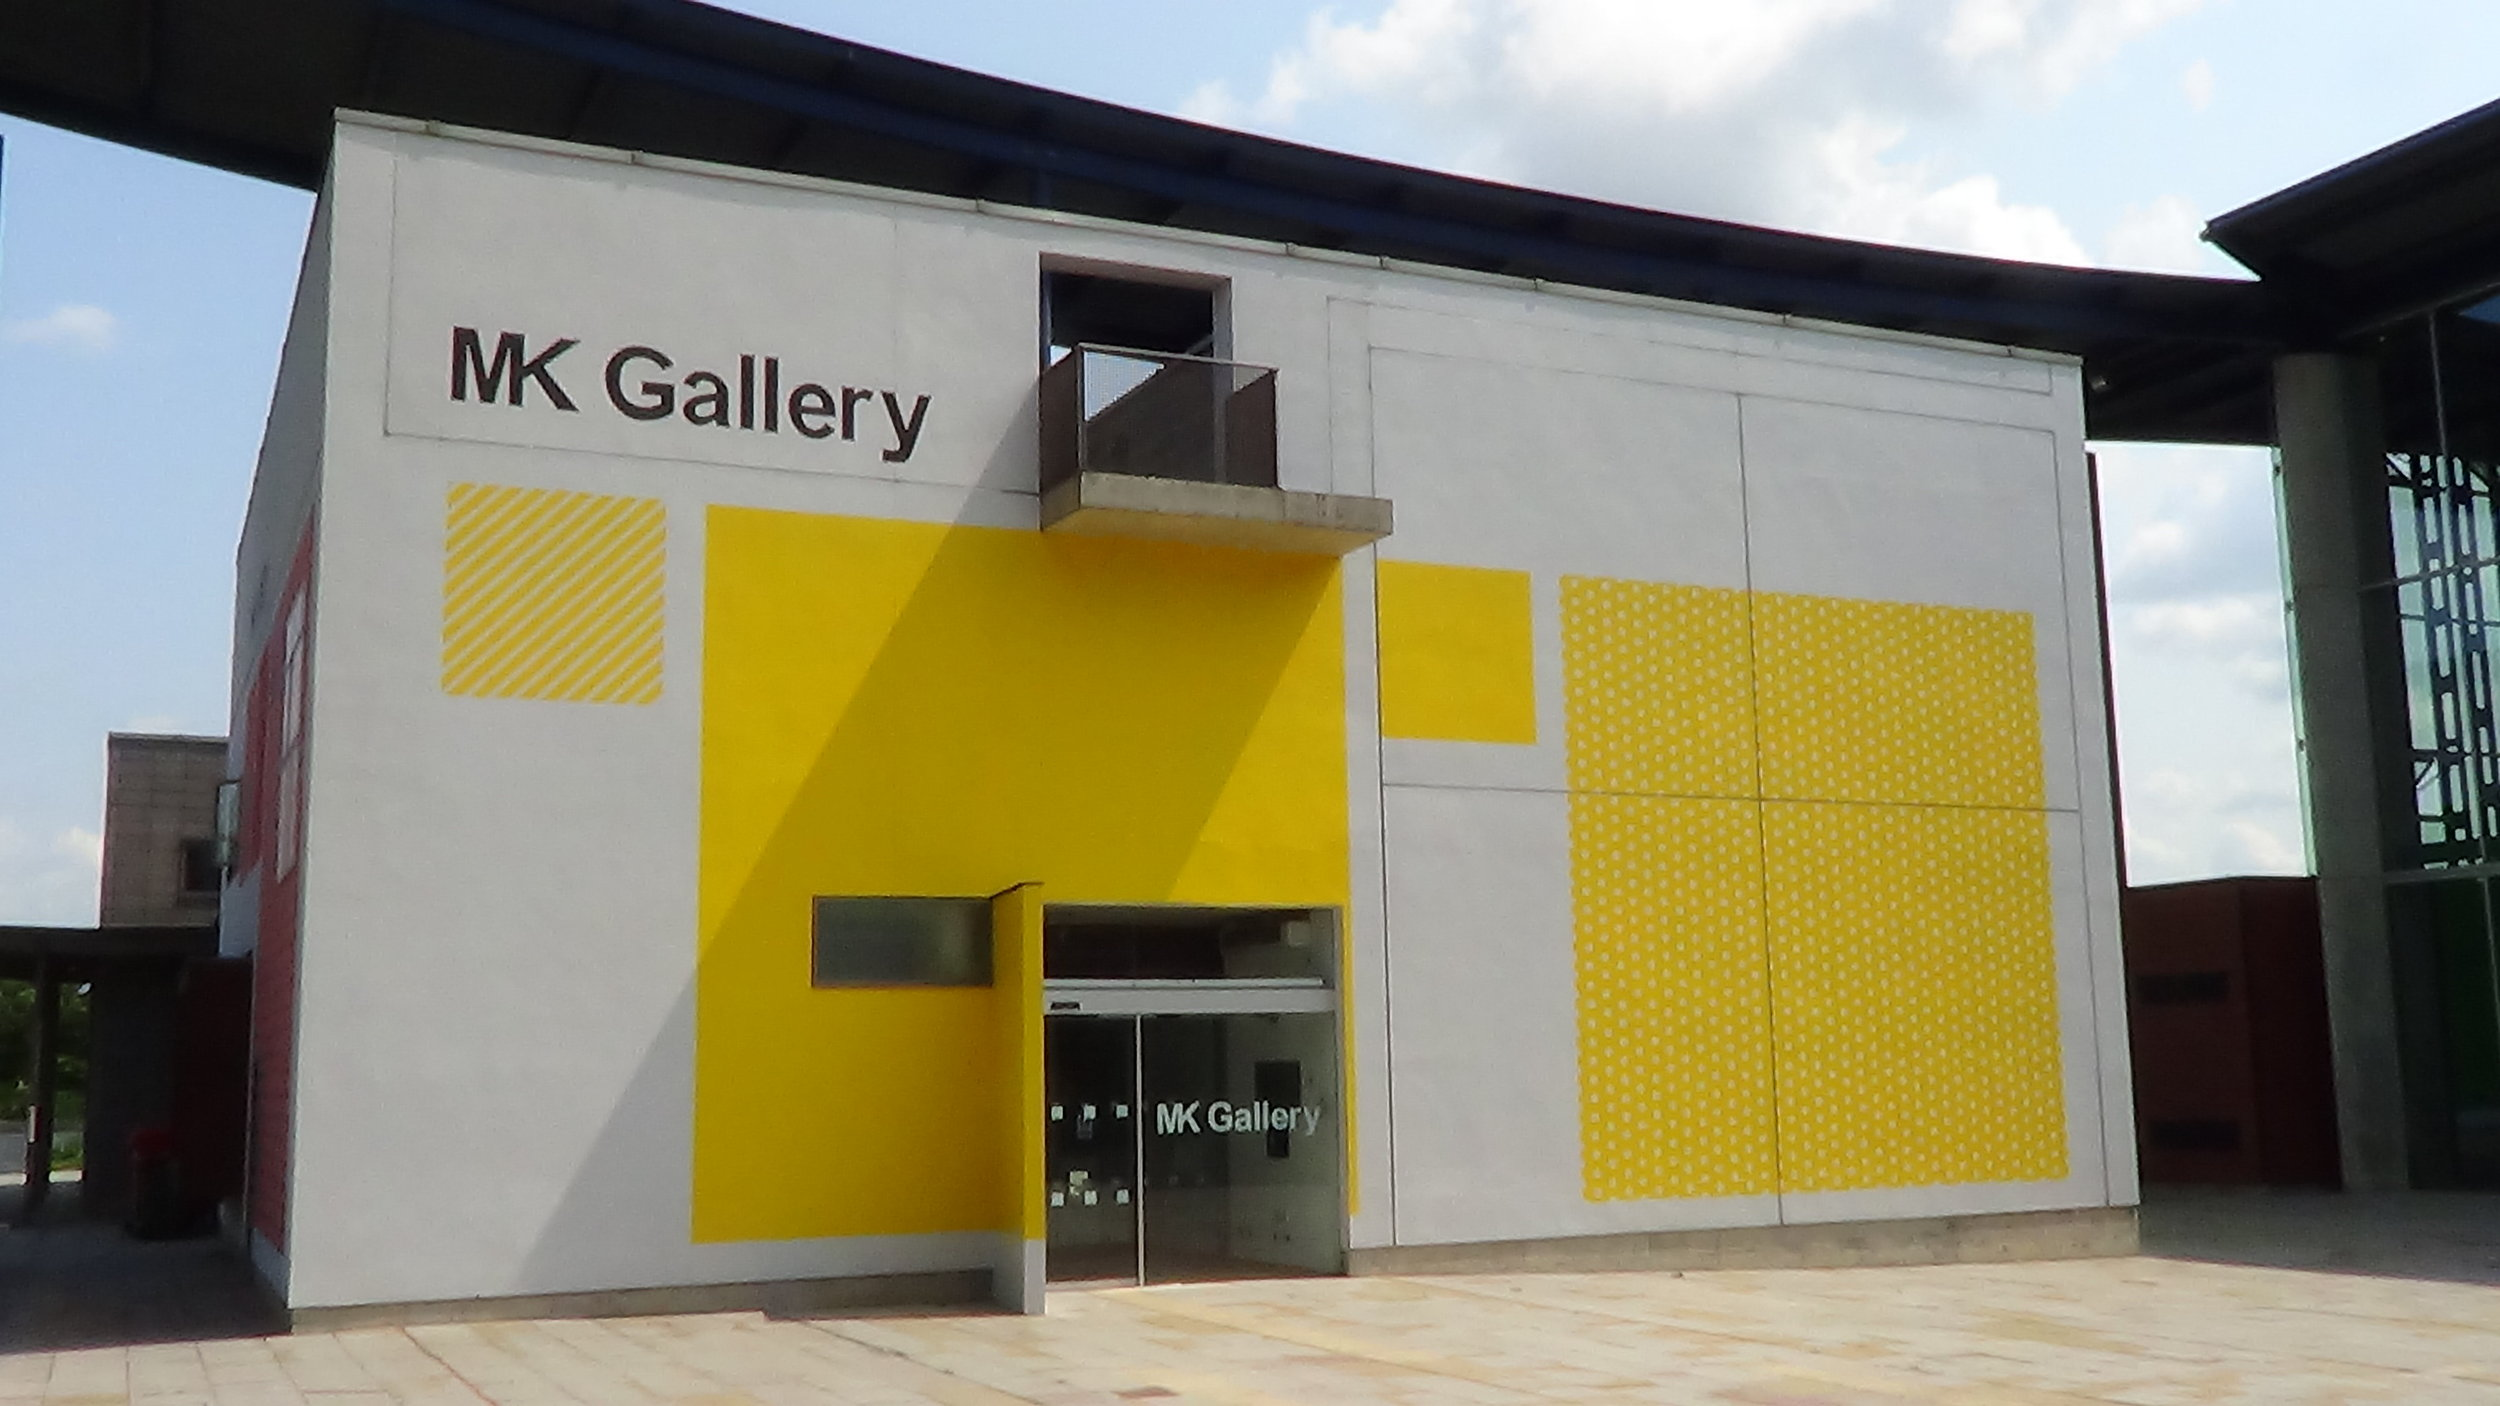 This spring, MK Gallery showcases new and exciting work by over 70 emerging and established artists in  MK Calling 2017 . This exhibition will celebrate and champion the breadth of creativity in and around Milton Keynes and includes a wide range of art forms alongside a dynamic programme of events and participatory sessions.  The  MK Calling 2017 preview with live music, food and drinks will take place on Thursday 20 April from 6-10pm. Speeches will take place at 6.45pm. Everyone is welcome.   MK Calling 2017 runs from 21 April to 27 May 2016. Admission is free.